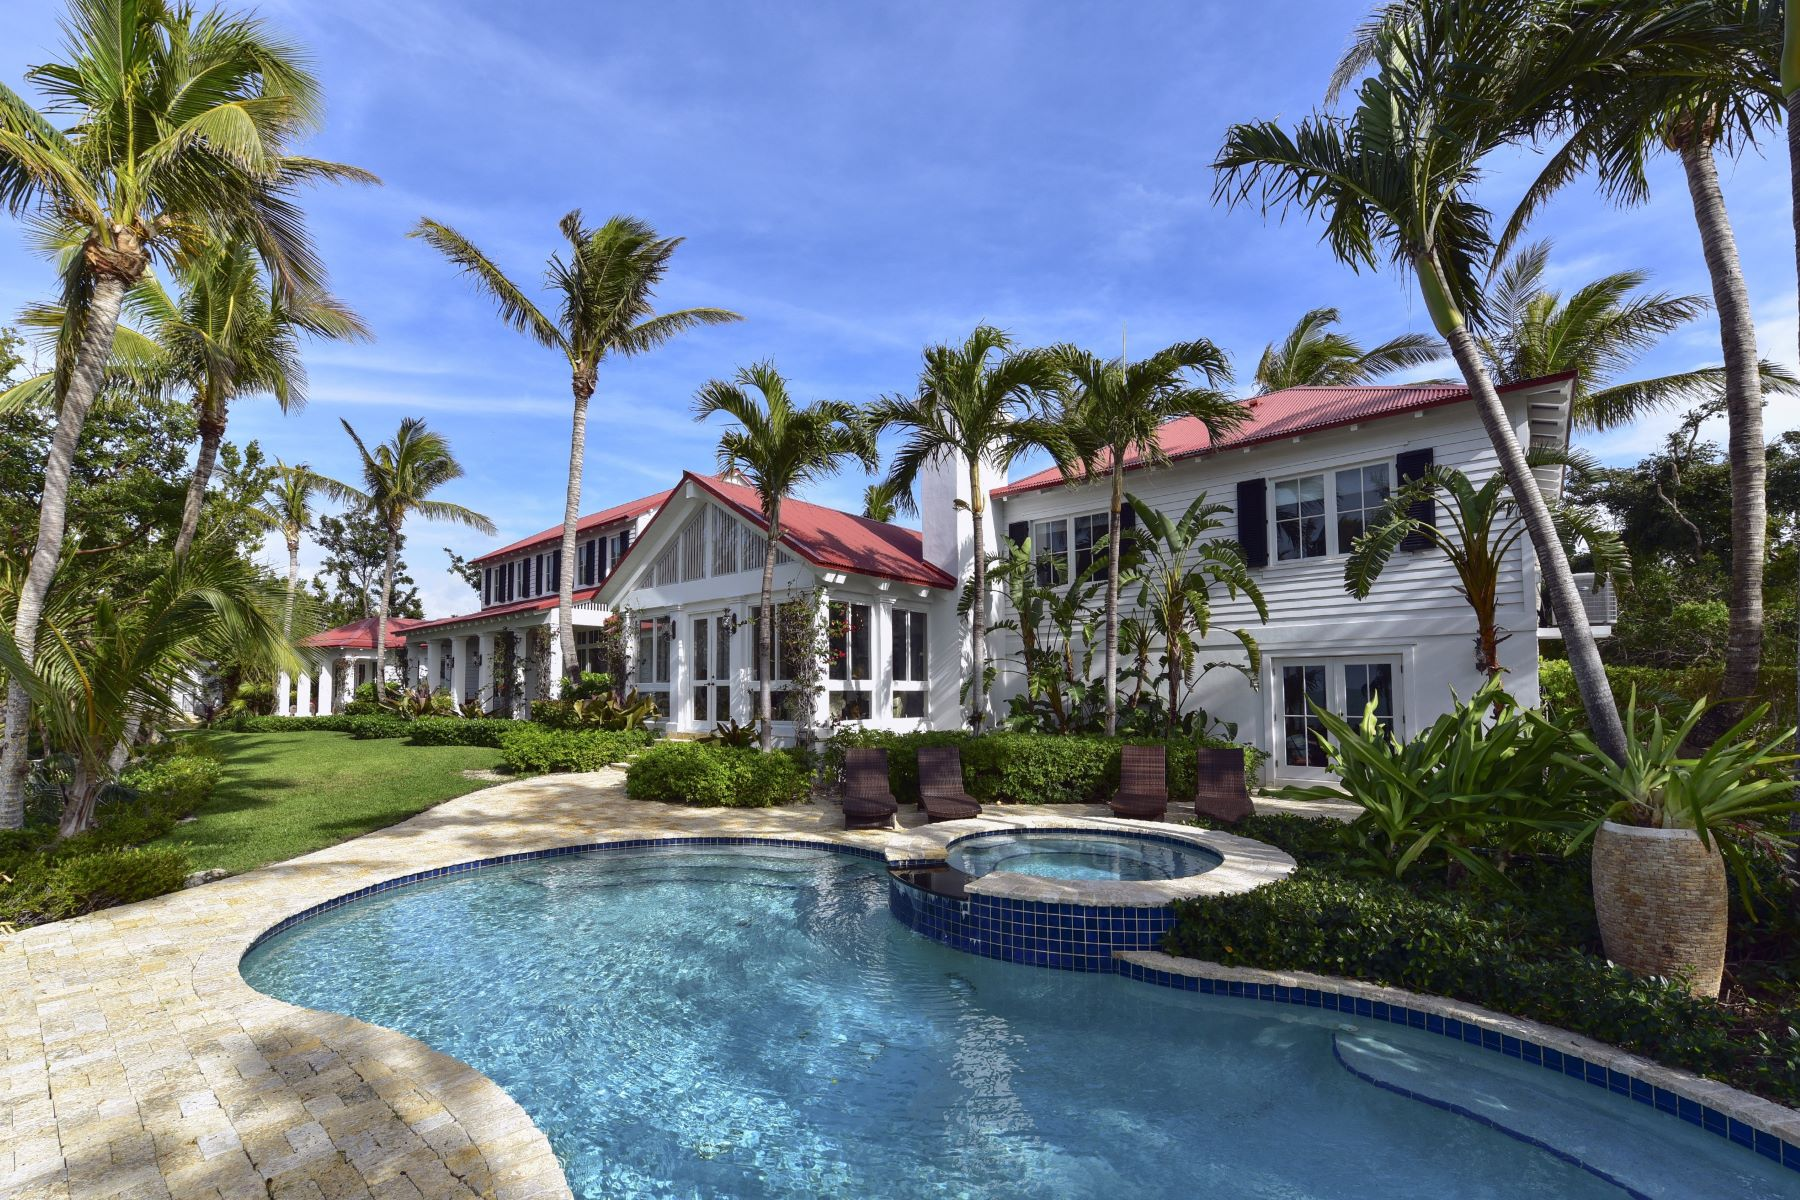 Single Family Homes for Sale at 75900 Overseas Highway, Islamorada, FL 75900 Overseas Highway Islamorada, Florida 33036 United States